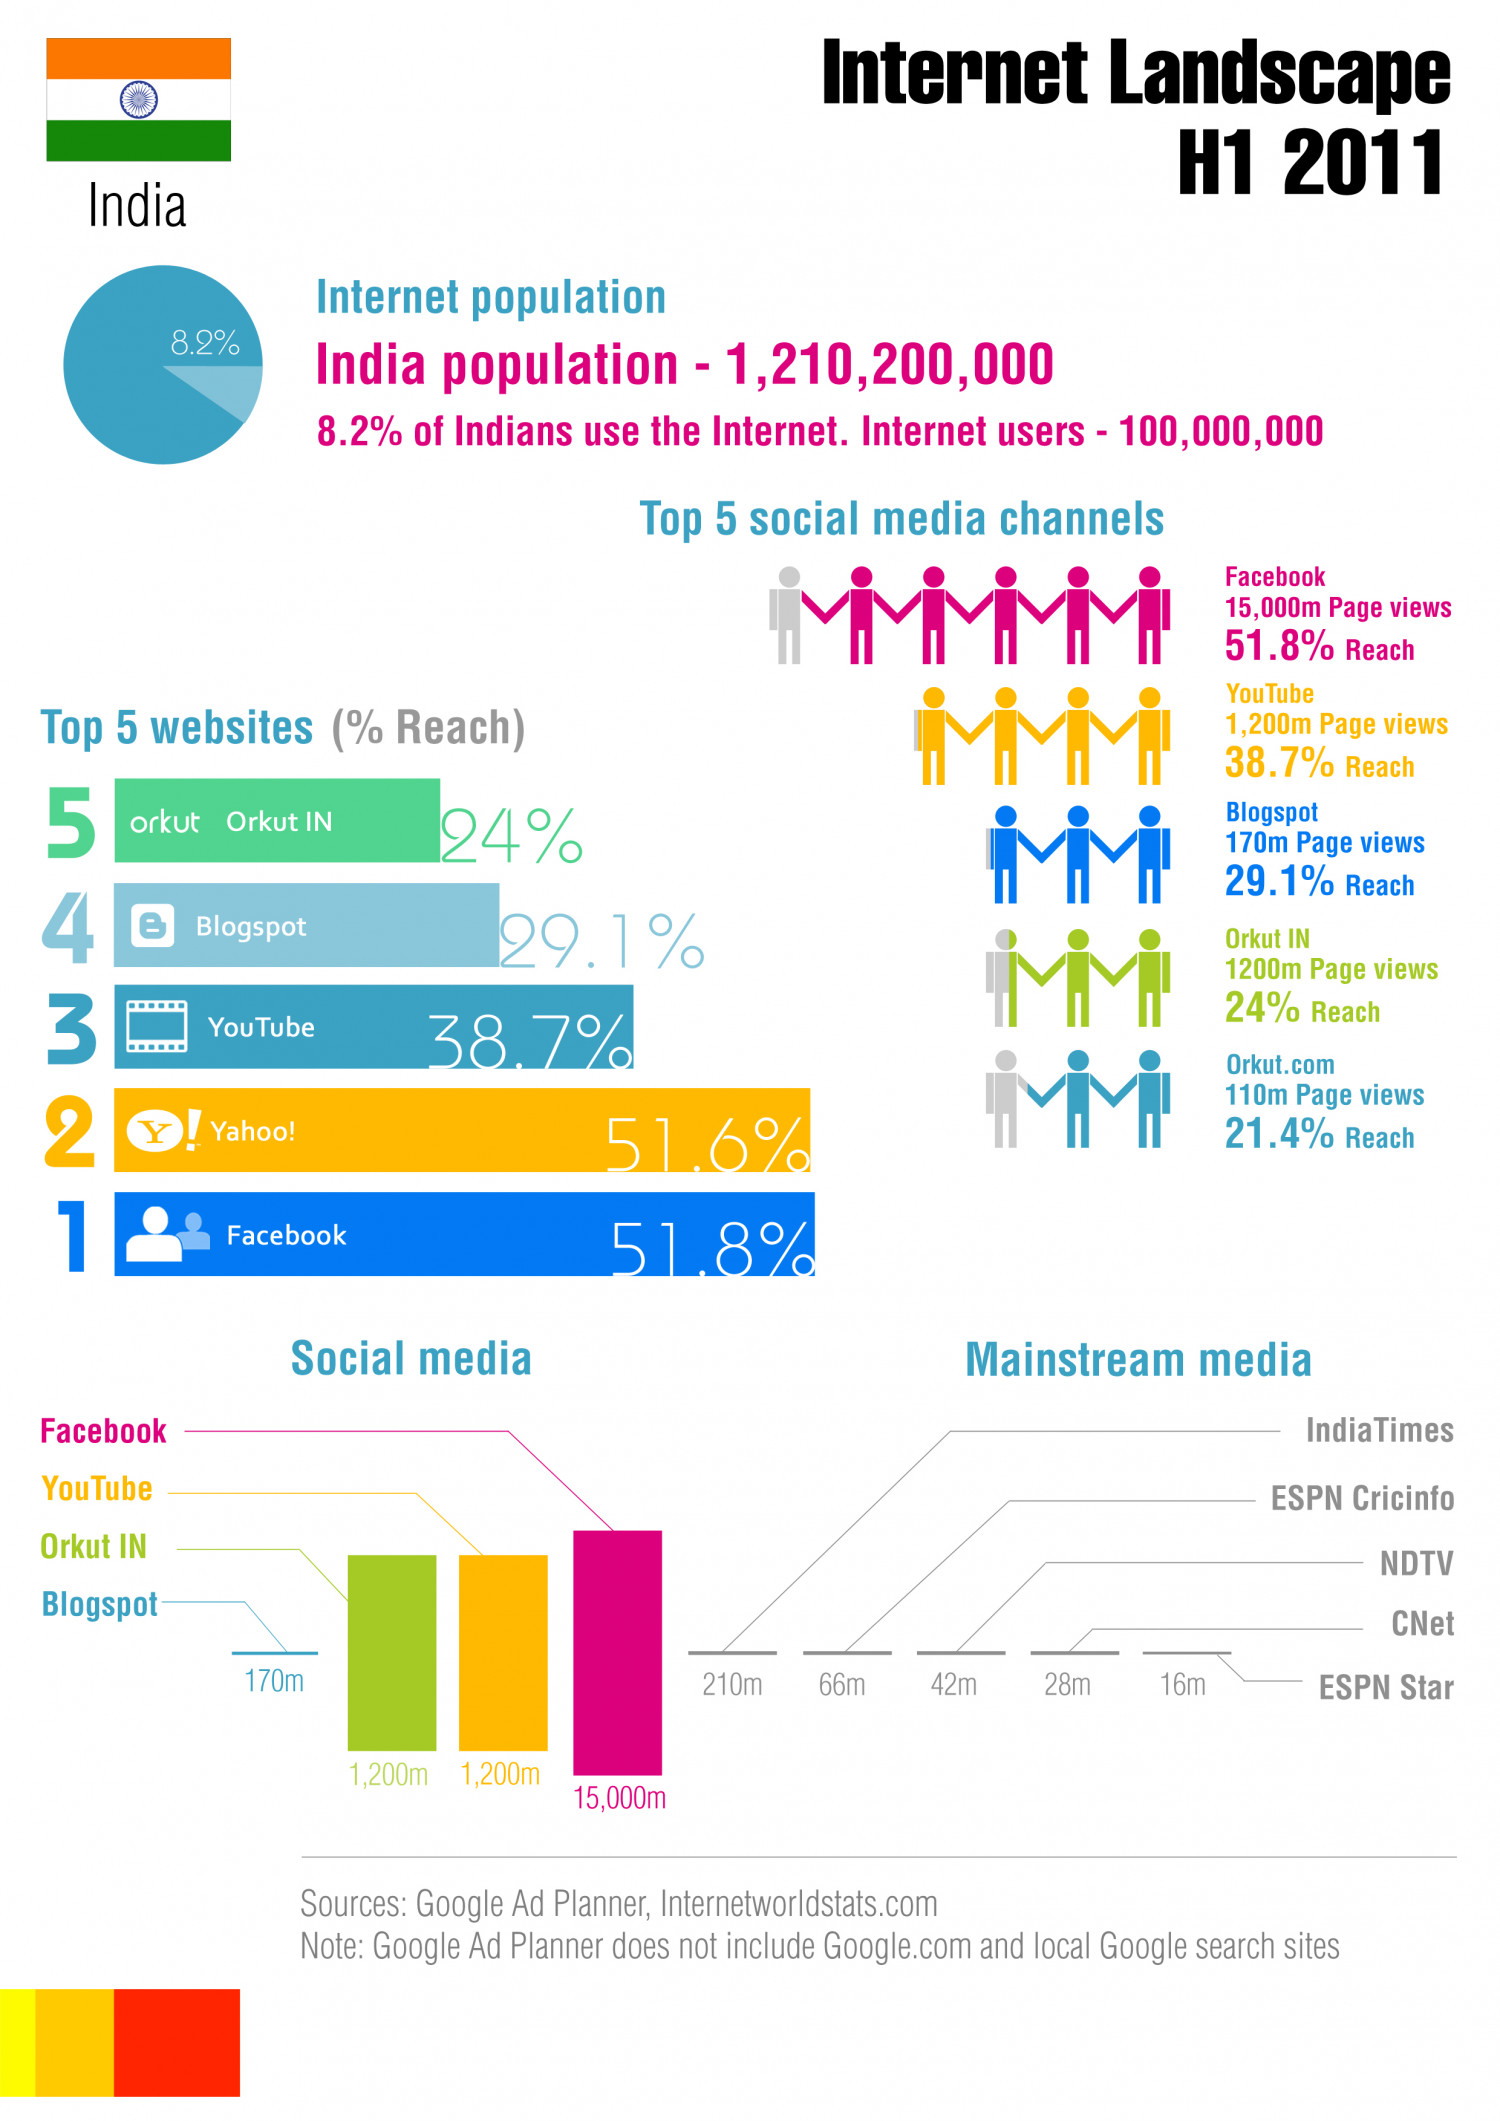 Indian Internet Landscape Infographic